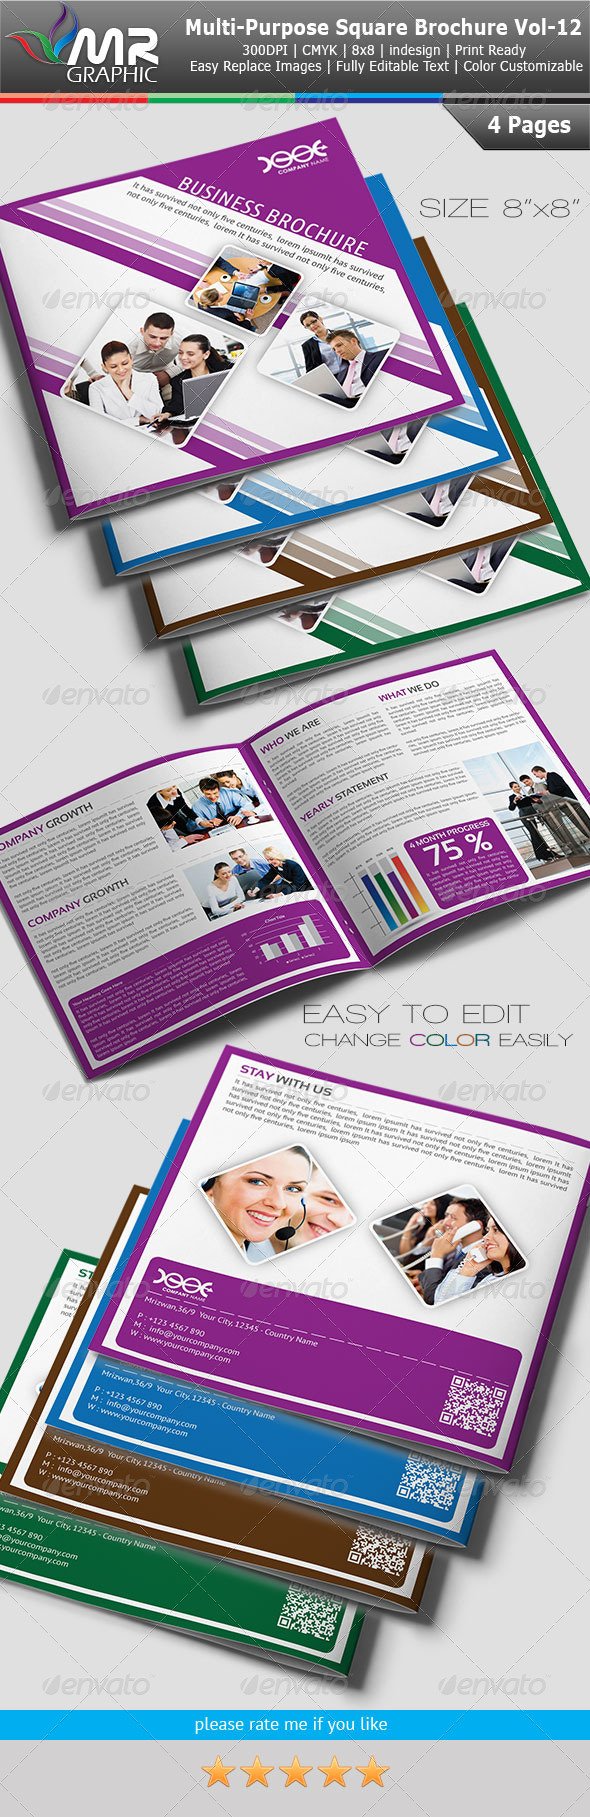 Multipurpose Square Business Brochure Vol-12 - Corporate Brochures